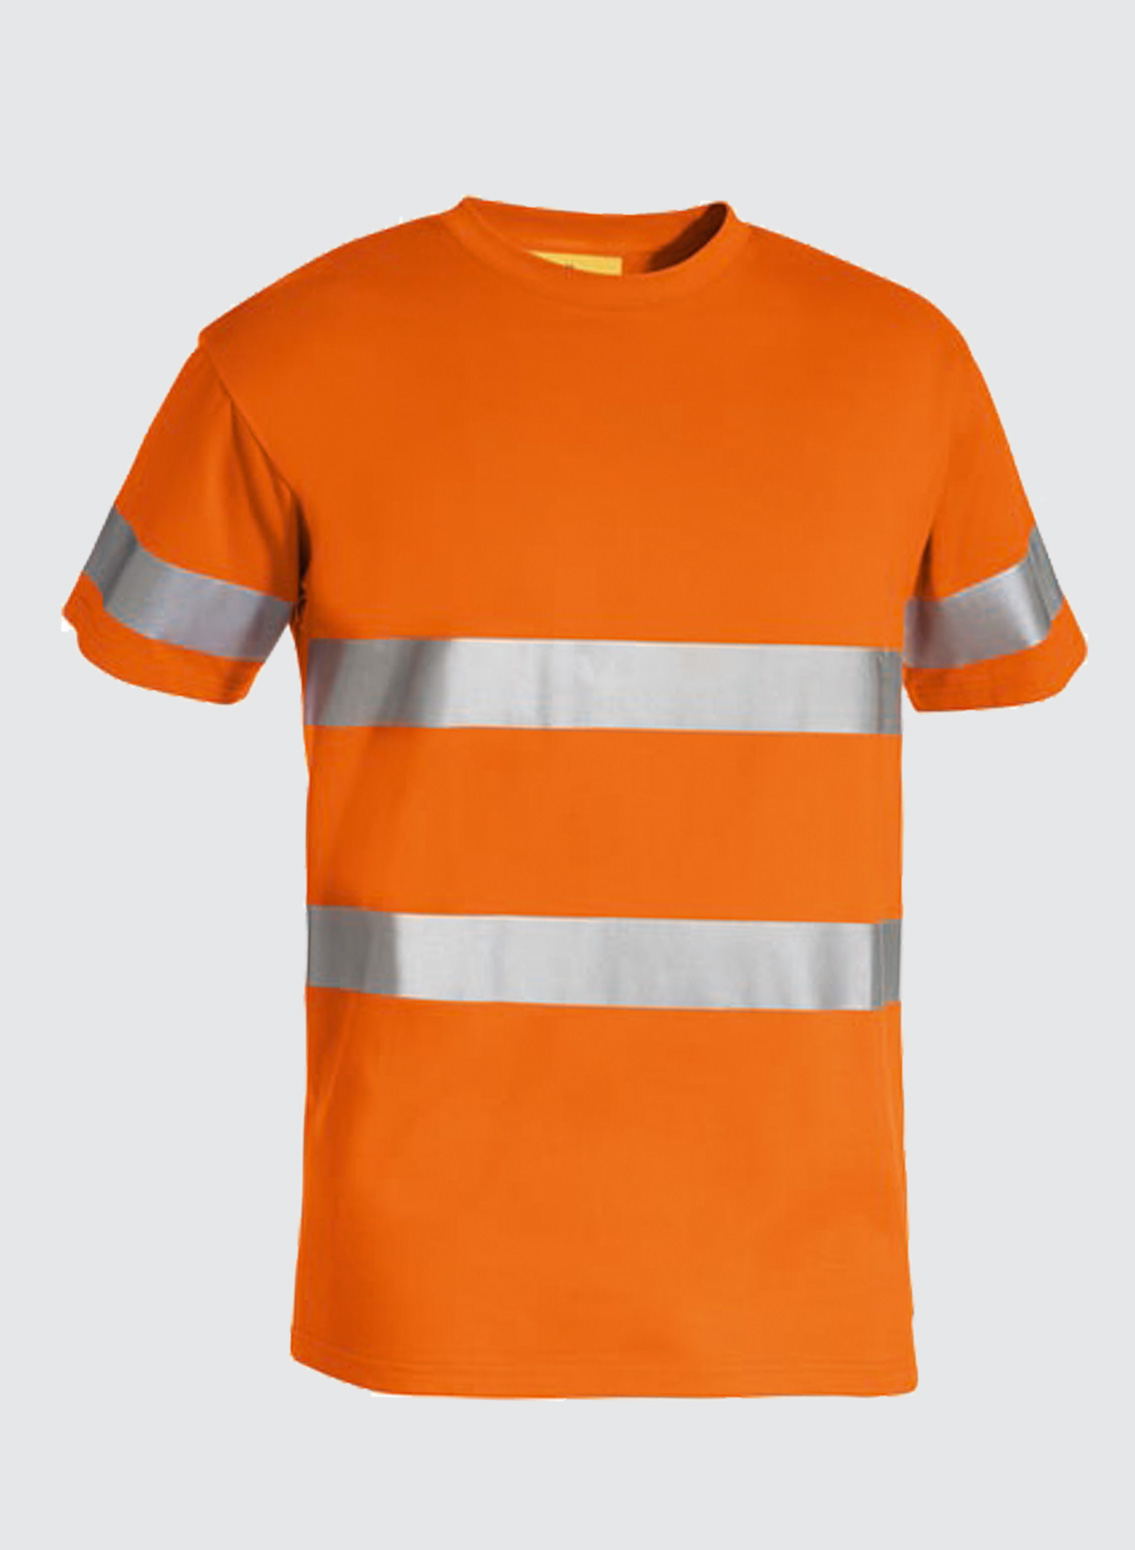 Bk1017t 3m taped hi vis cotton t shirt business image group for Hi vis t shirt printing